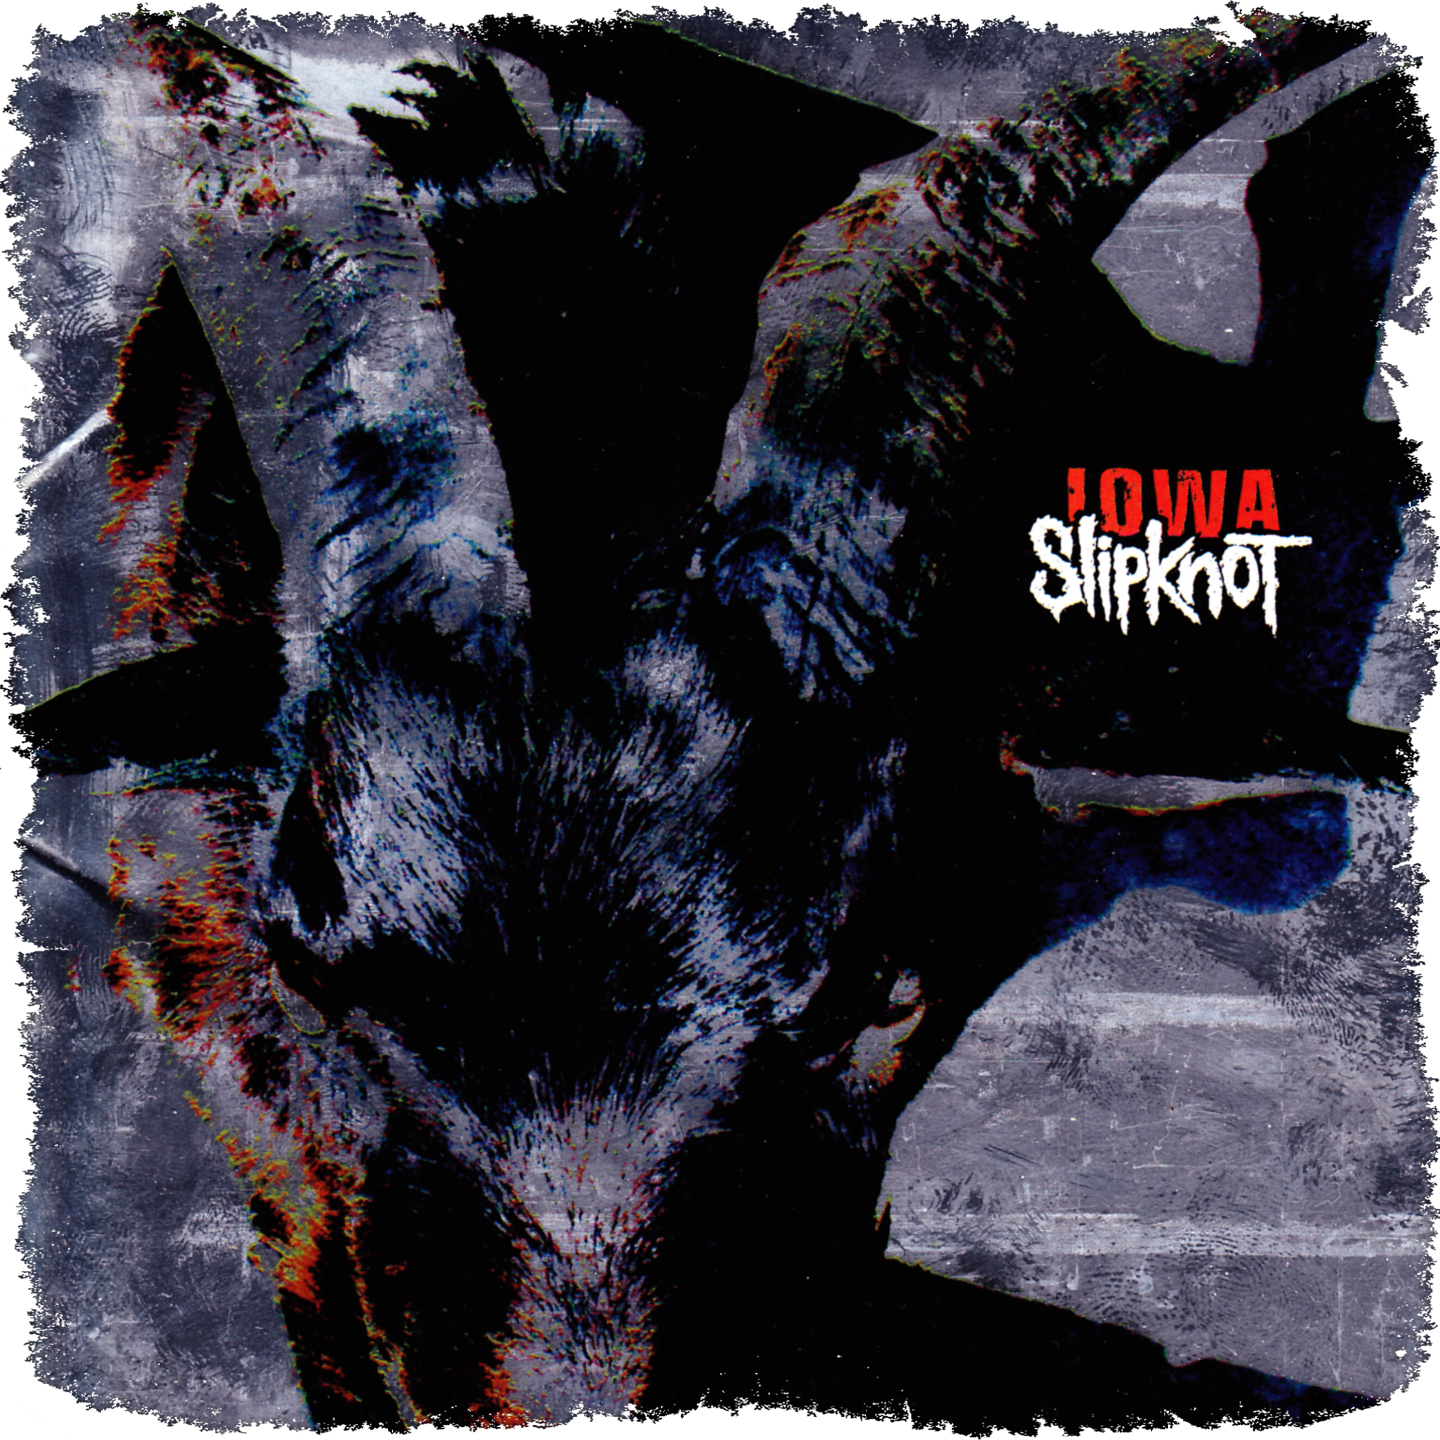 Slipknot - Iowa - Album Cover